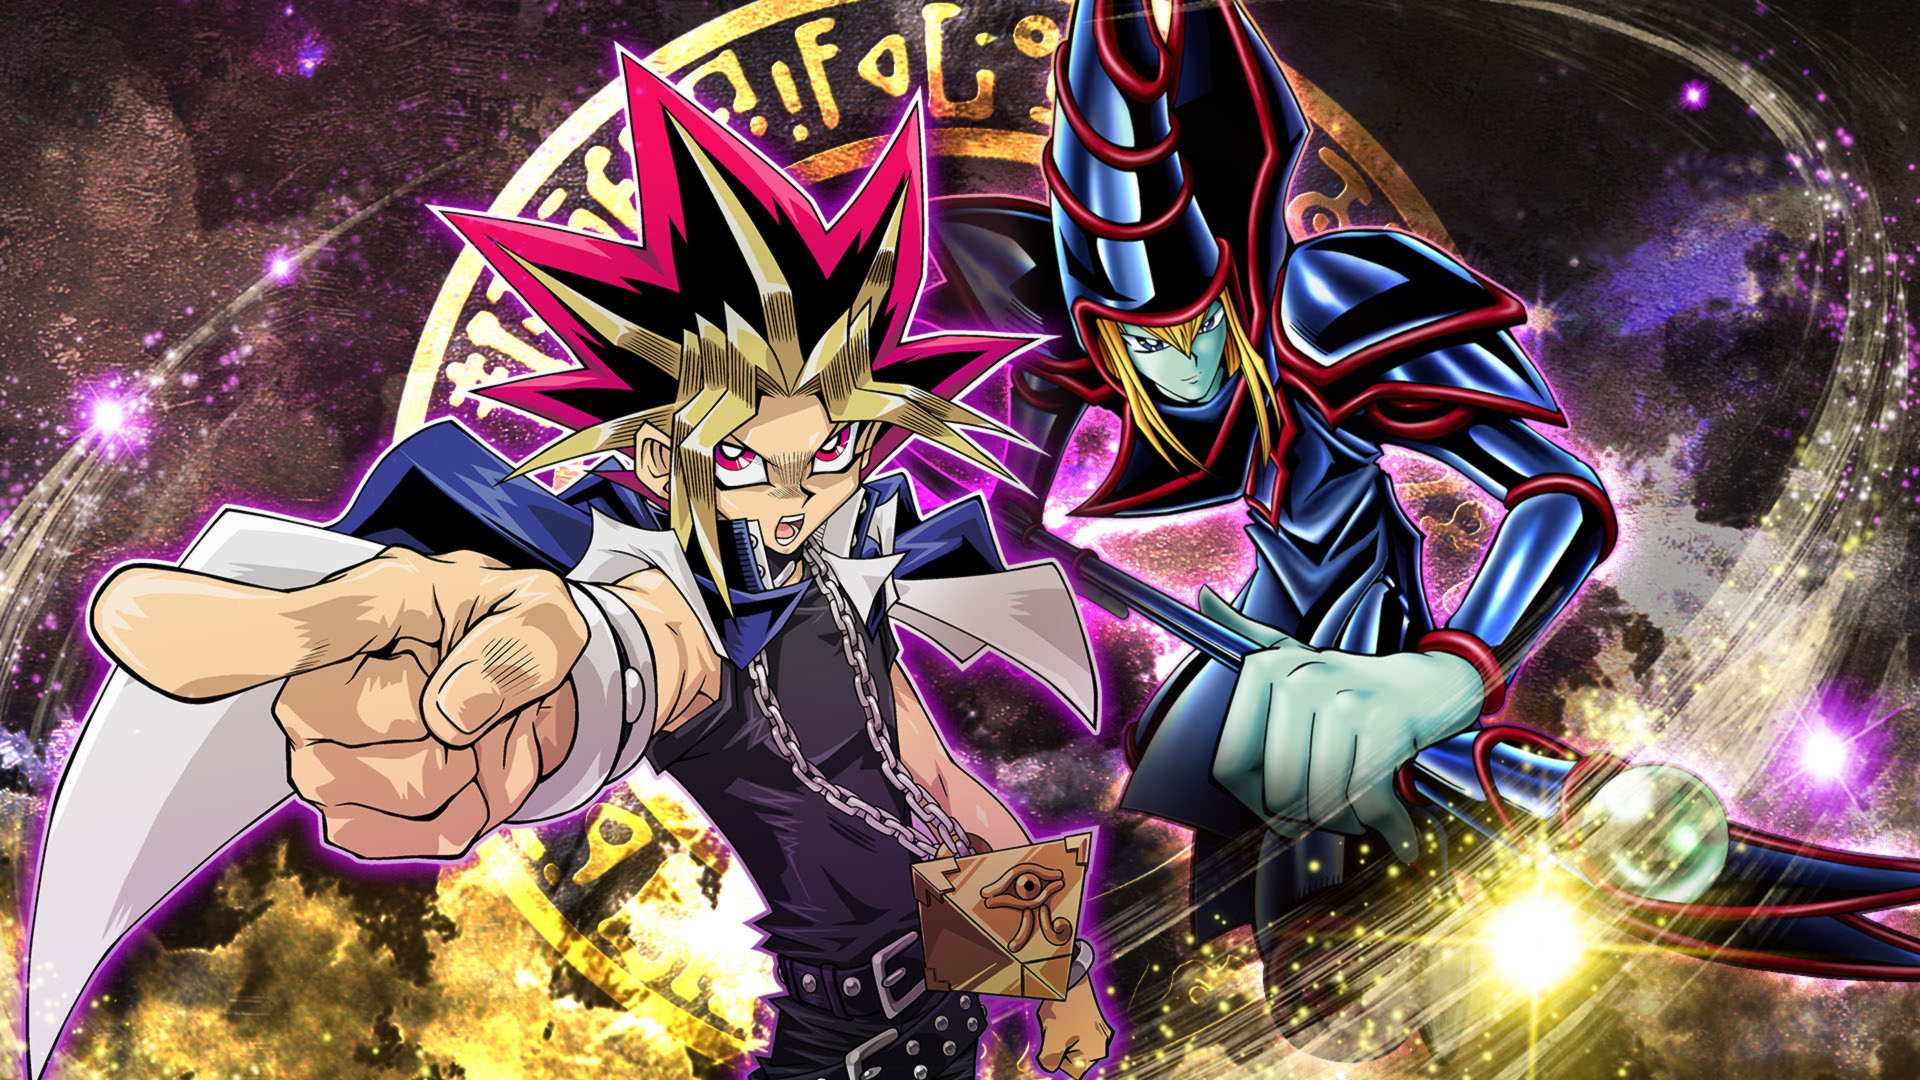 Yami Yugi Wallpapers Top Free Yami Yugi Backgrounds